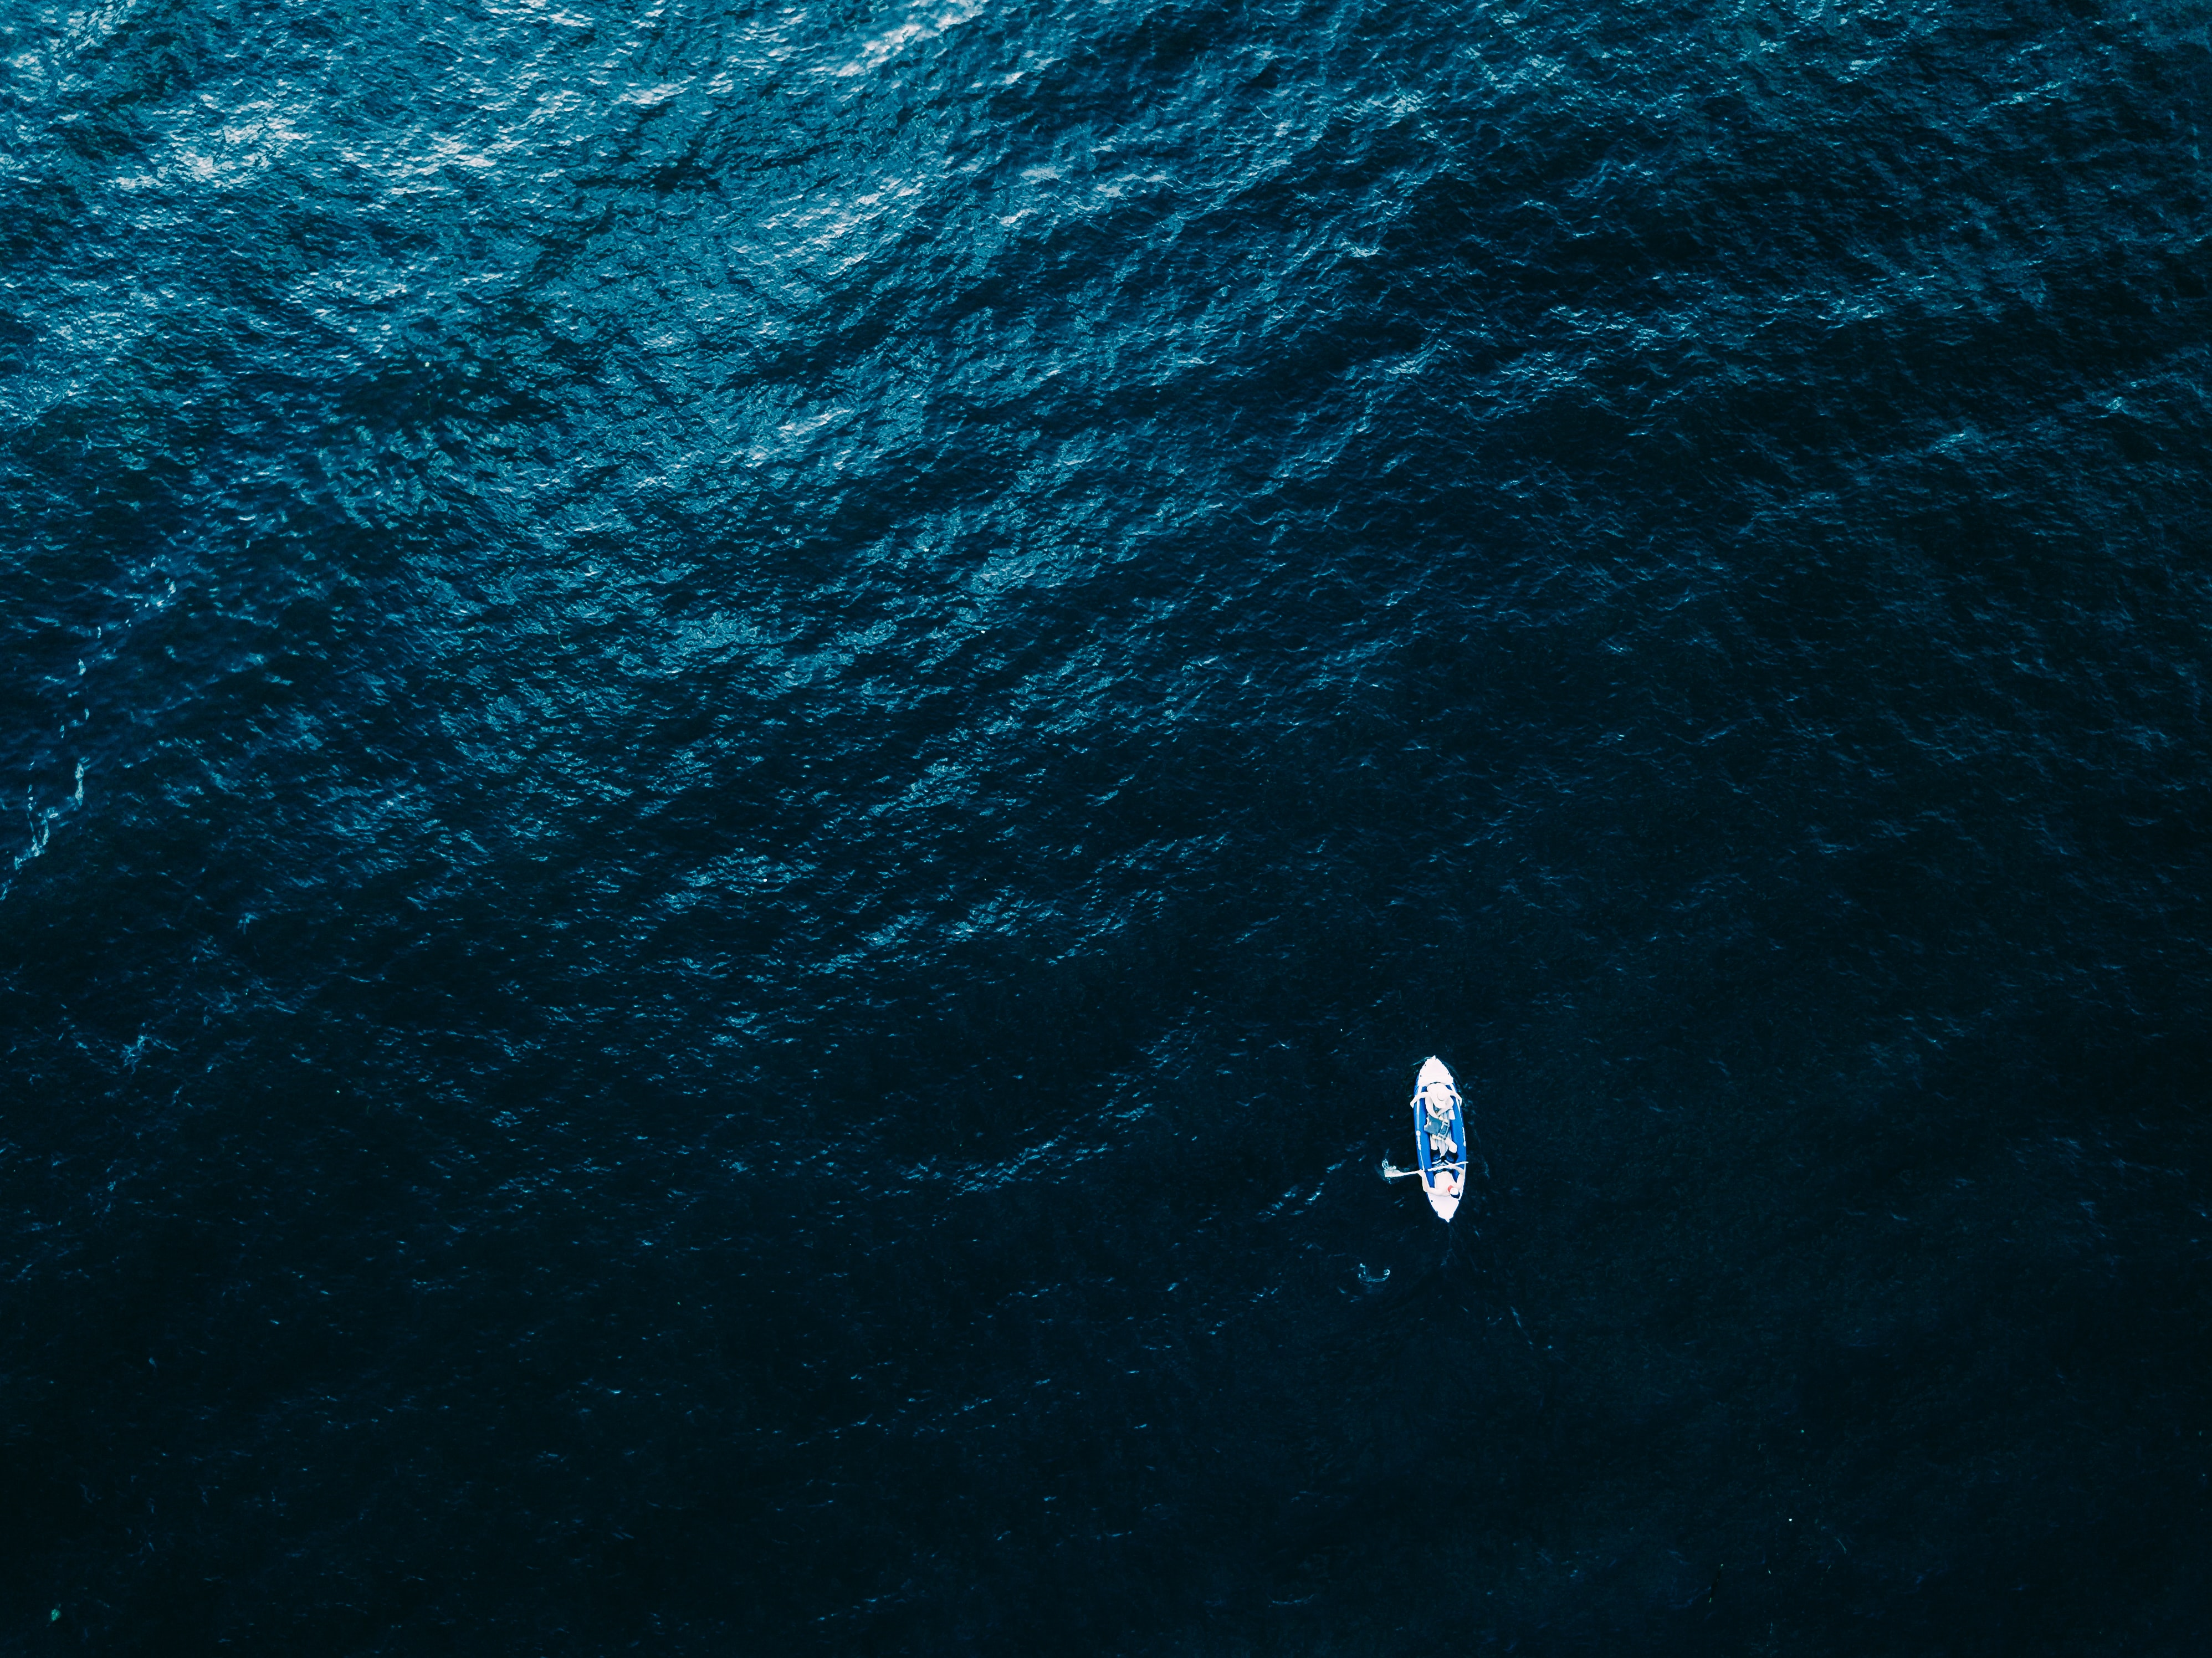 aerial photography of white boat on body of water